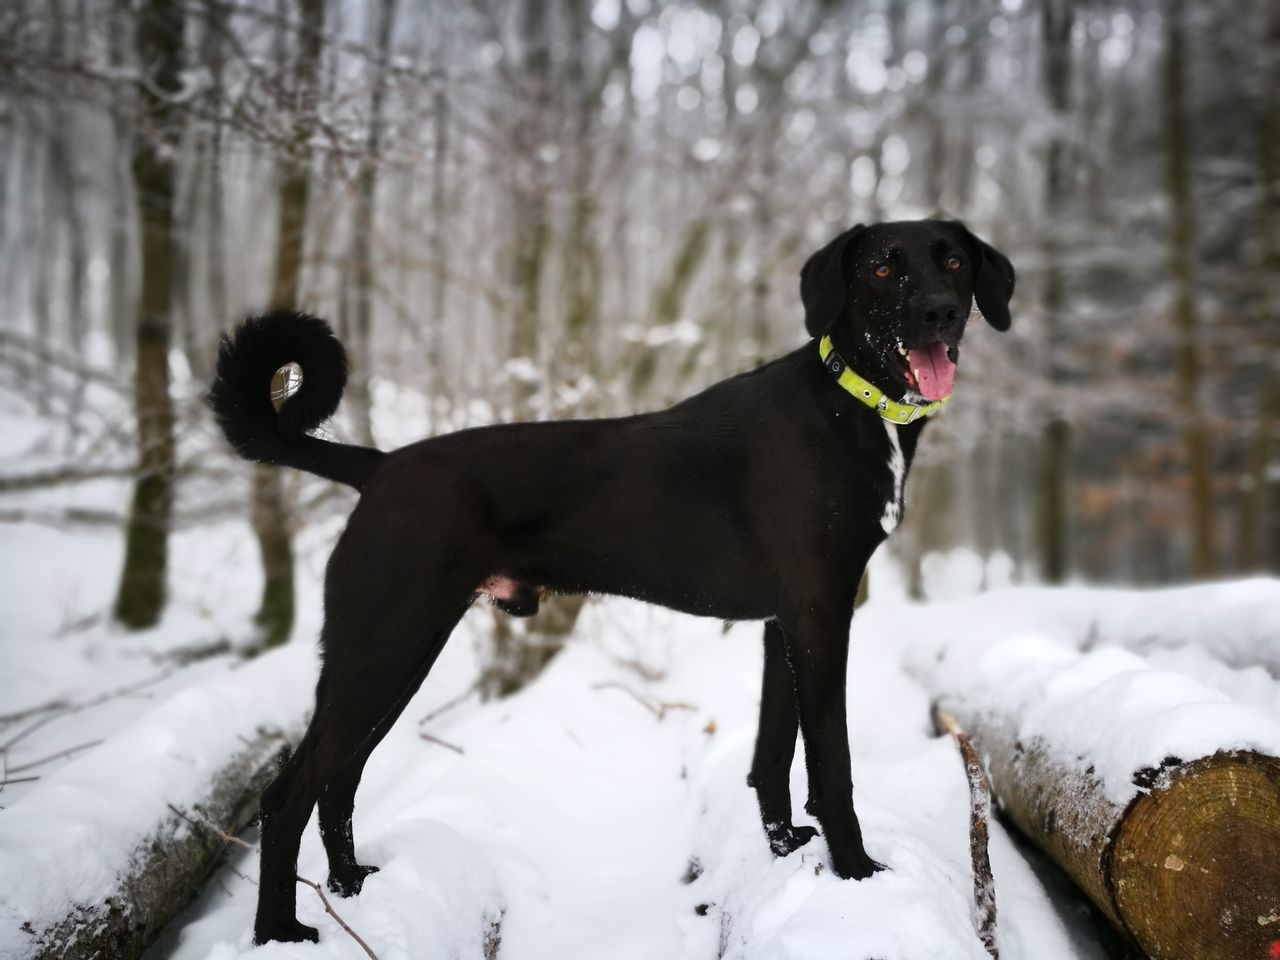 Cold Temperature Winter Snow Pets Dog Black Color Outdoors Black Labrador No People Nature Animal Themes Snowing Tree Day GassiGehen Gassi Lokithedog Doberdor Hundefotografie Hunde Liebe ♡ Hund Portrait HuaweiP9 Huawei P9 Leica Huaweiphotography EyeEmNewHere